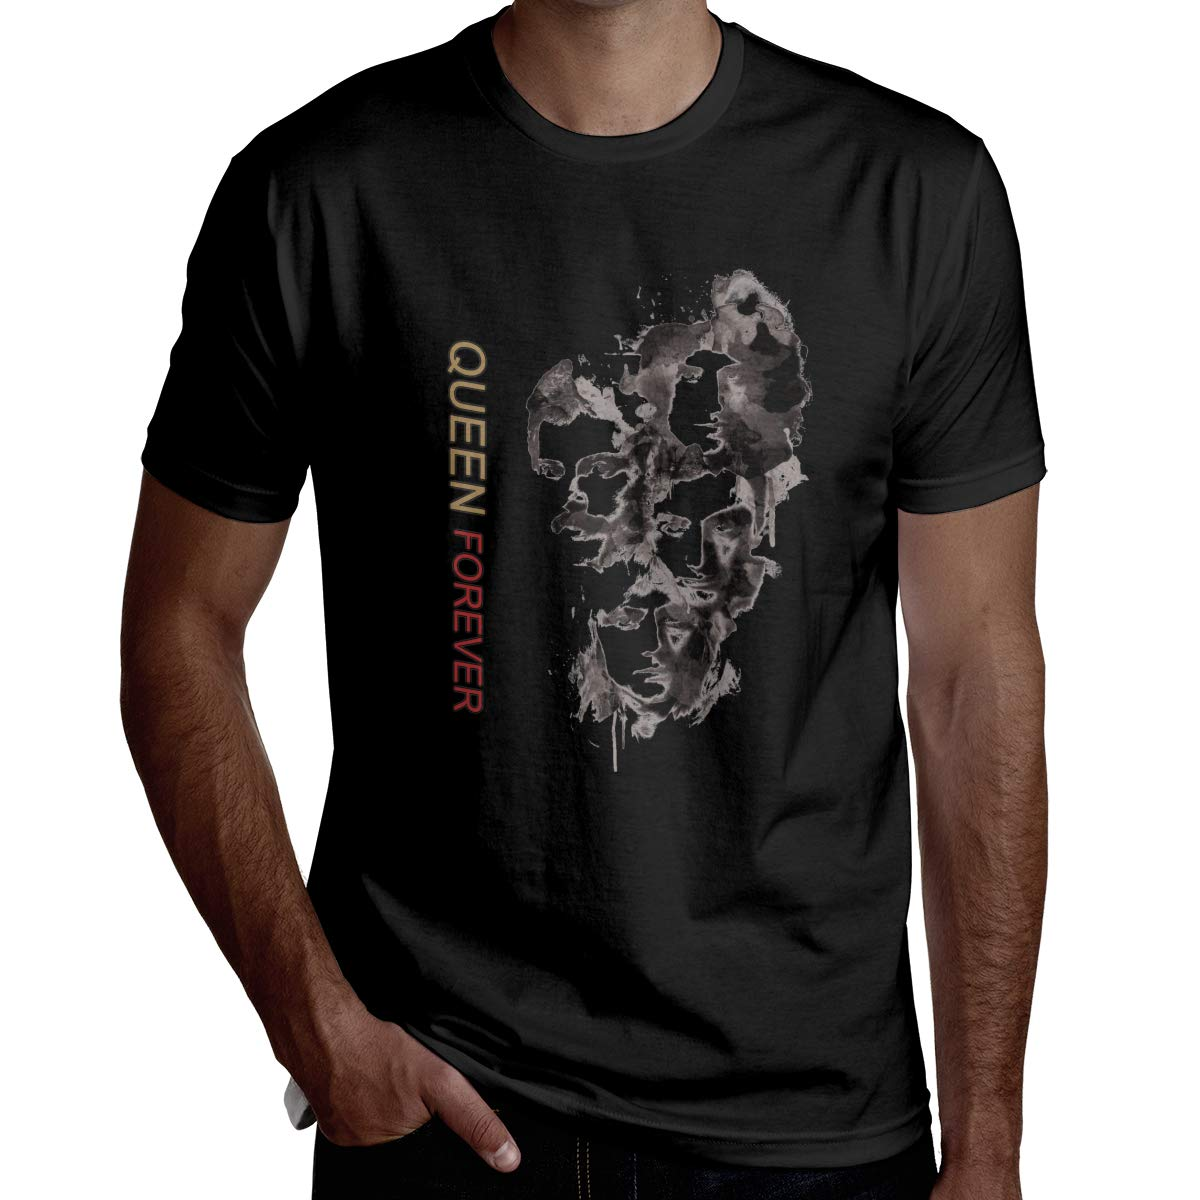 The Ultimate Best of Queen Mens Short Sleeve T-Shirt Casual Classic Cotton T-Shirt with Round Collar Black